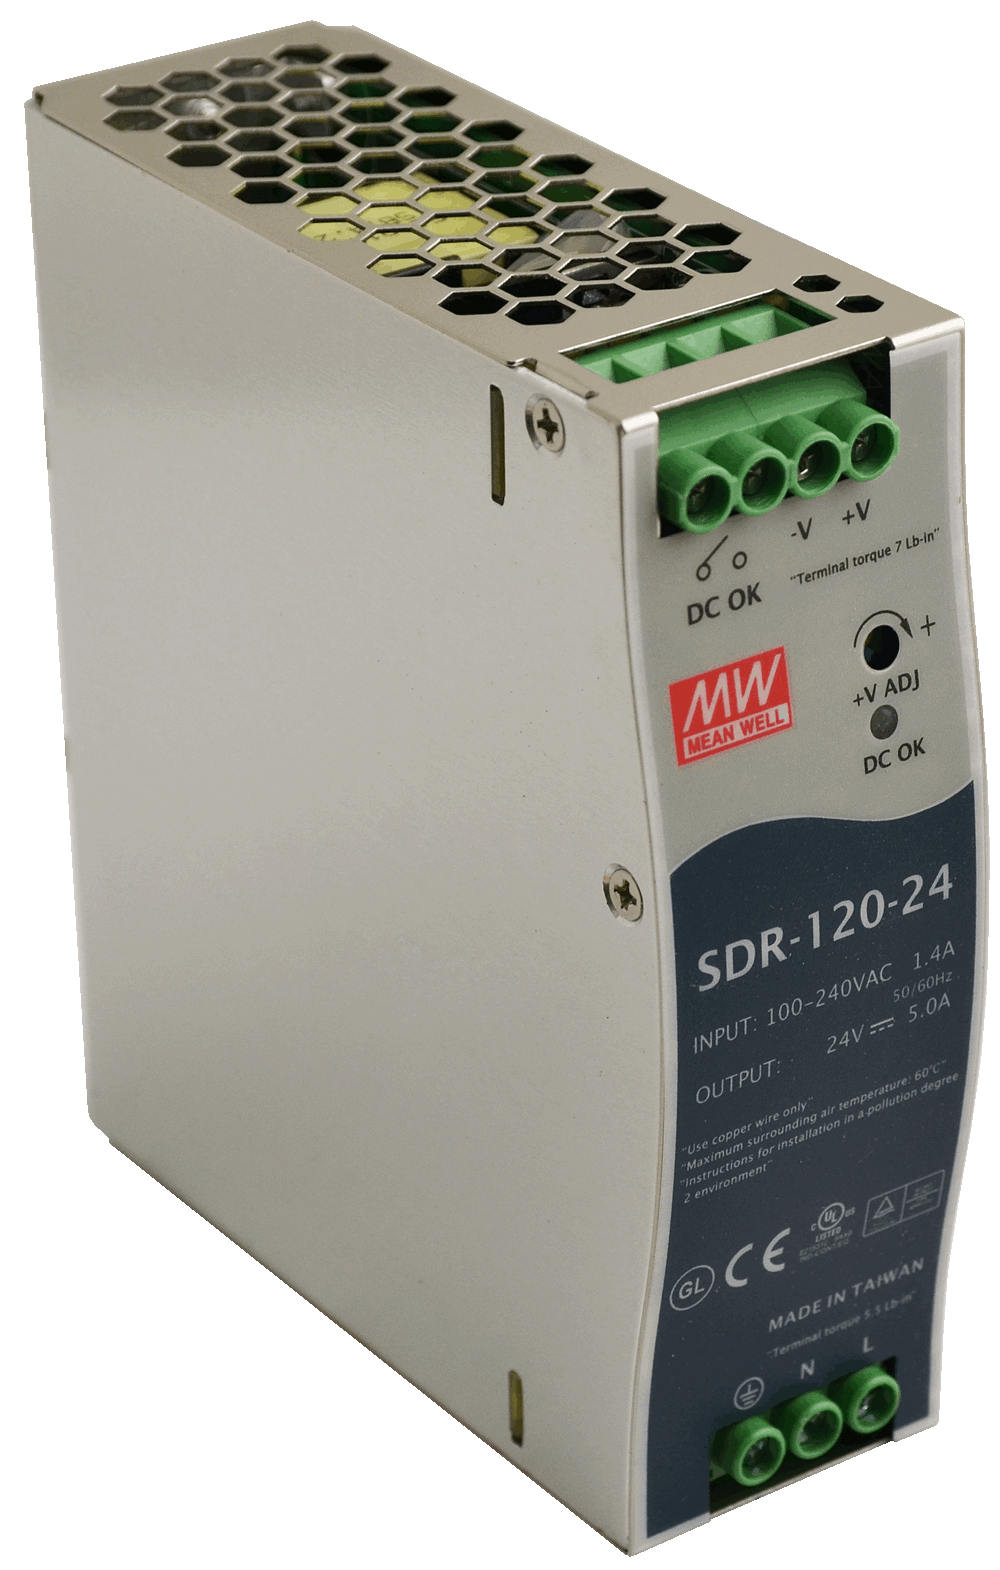 MEAN WELL SDR-120 Slim, High Reliability 120W Din Rail PSU